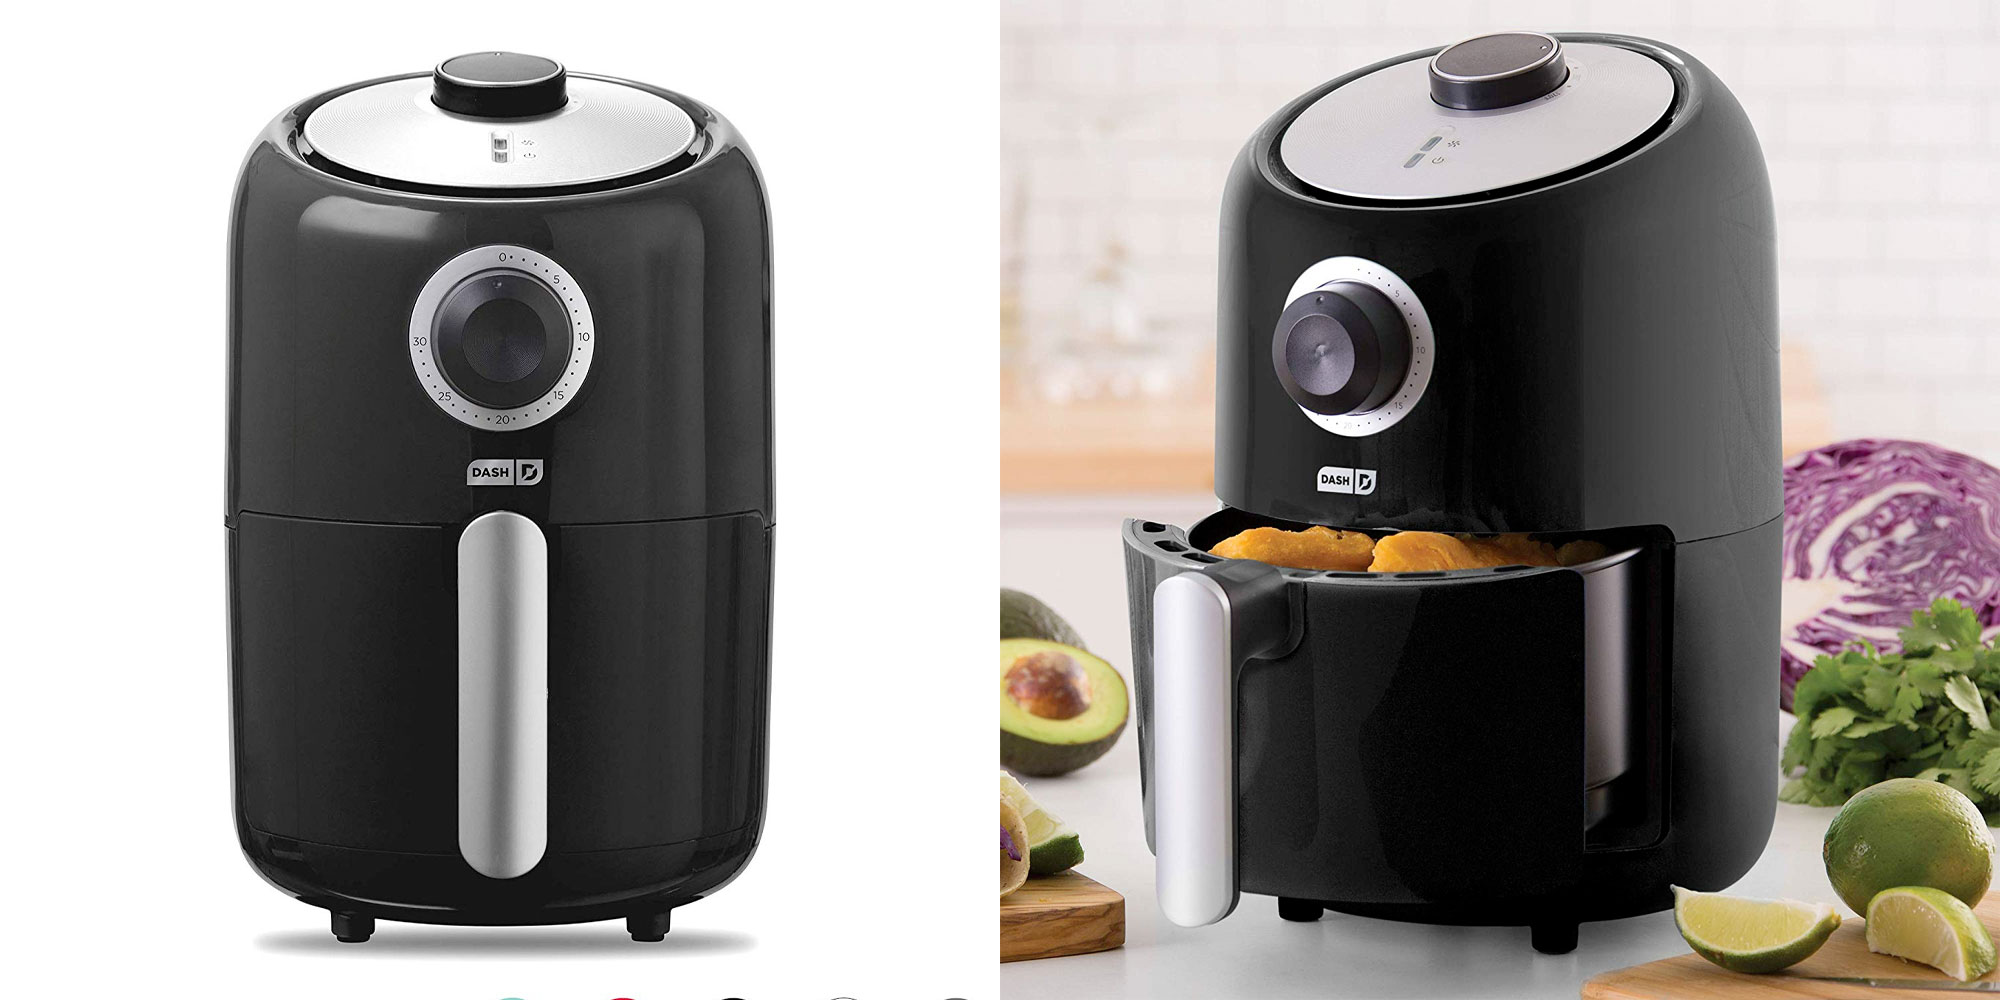 Enjoy healthier fried foods w/ this 1.2L compact air fryer for $40 shipped (Reg. $50)